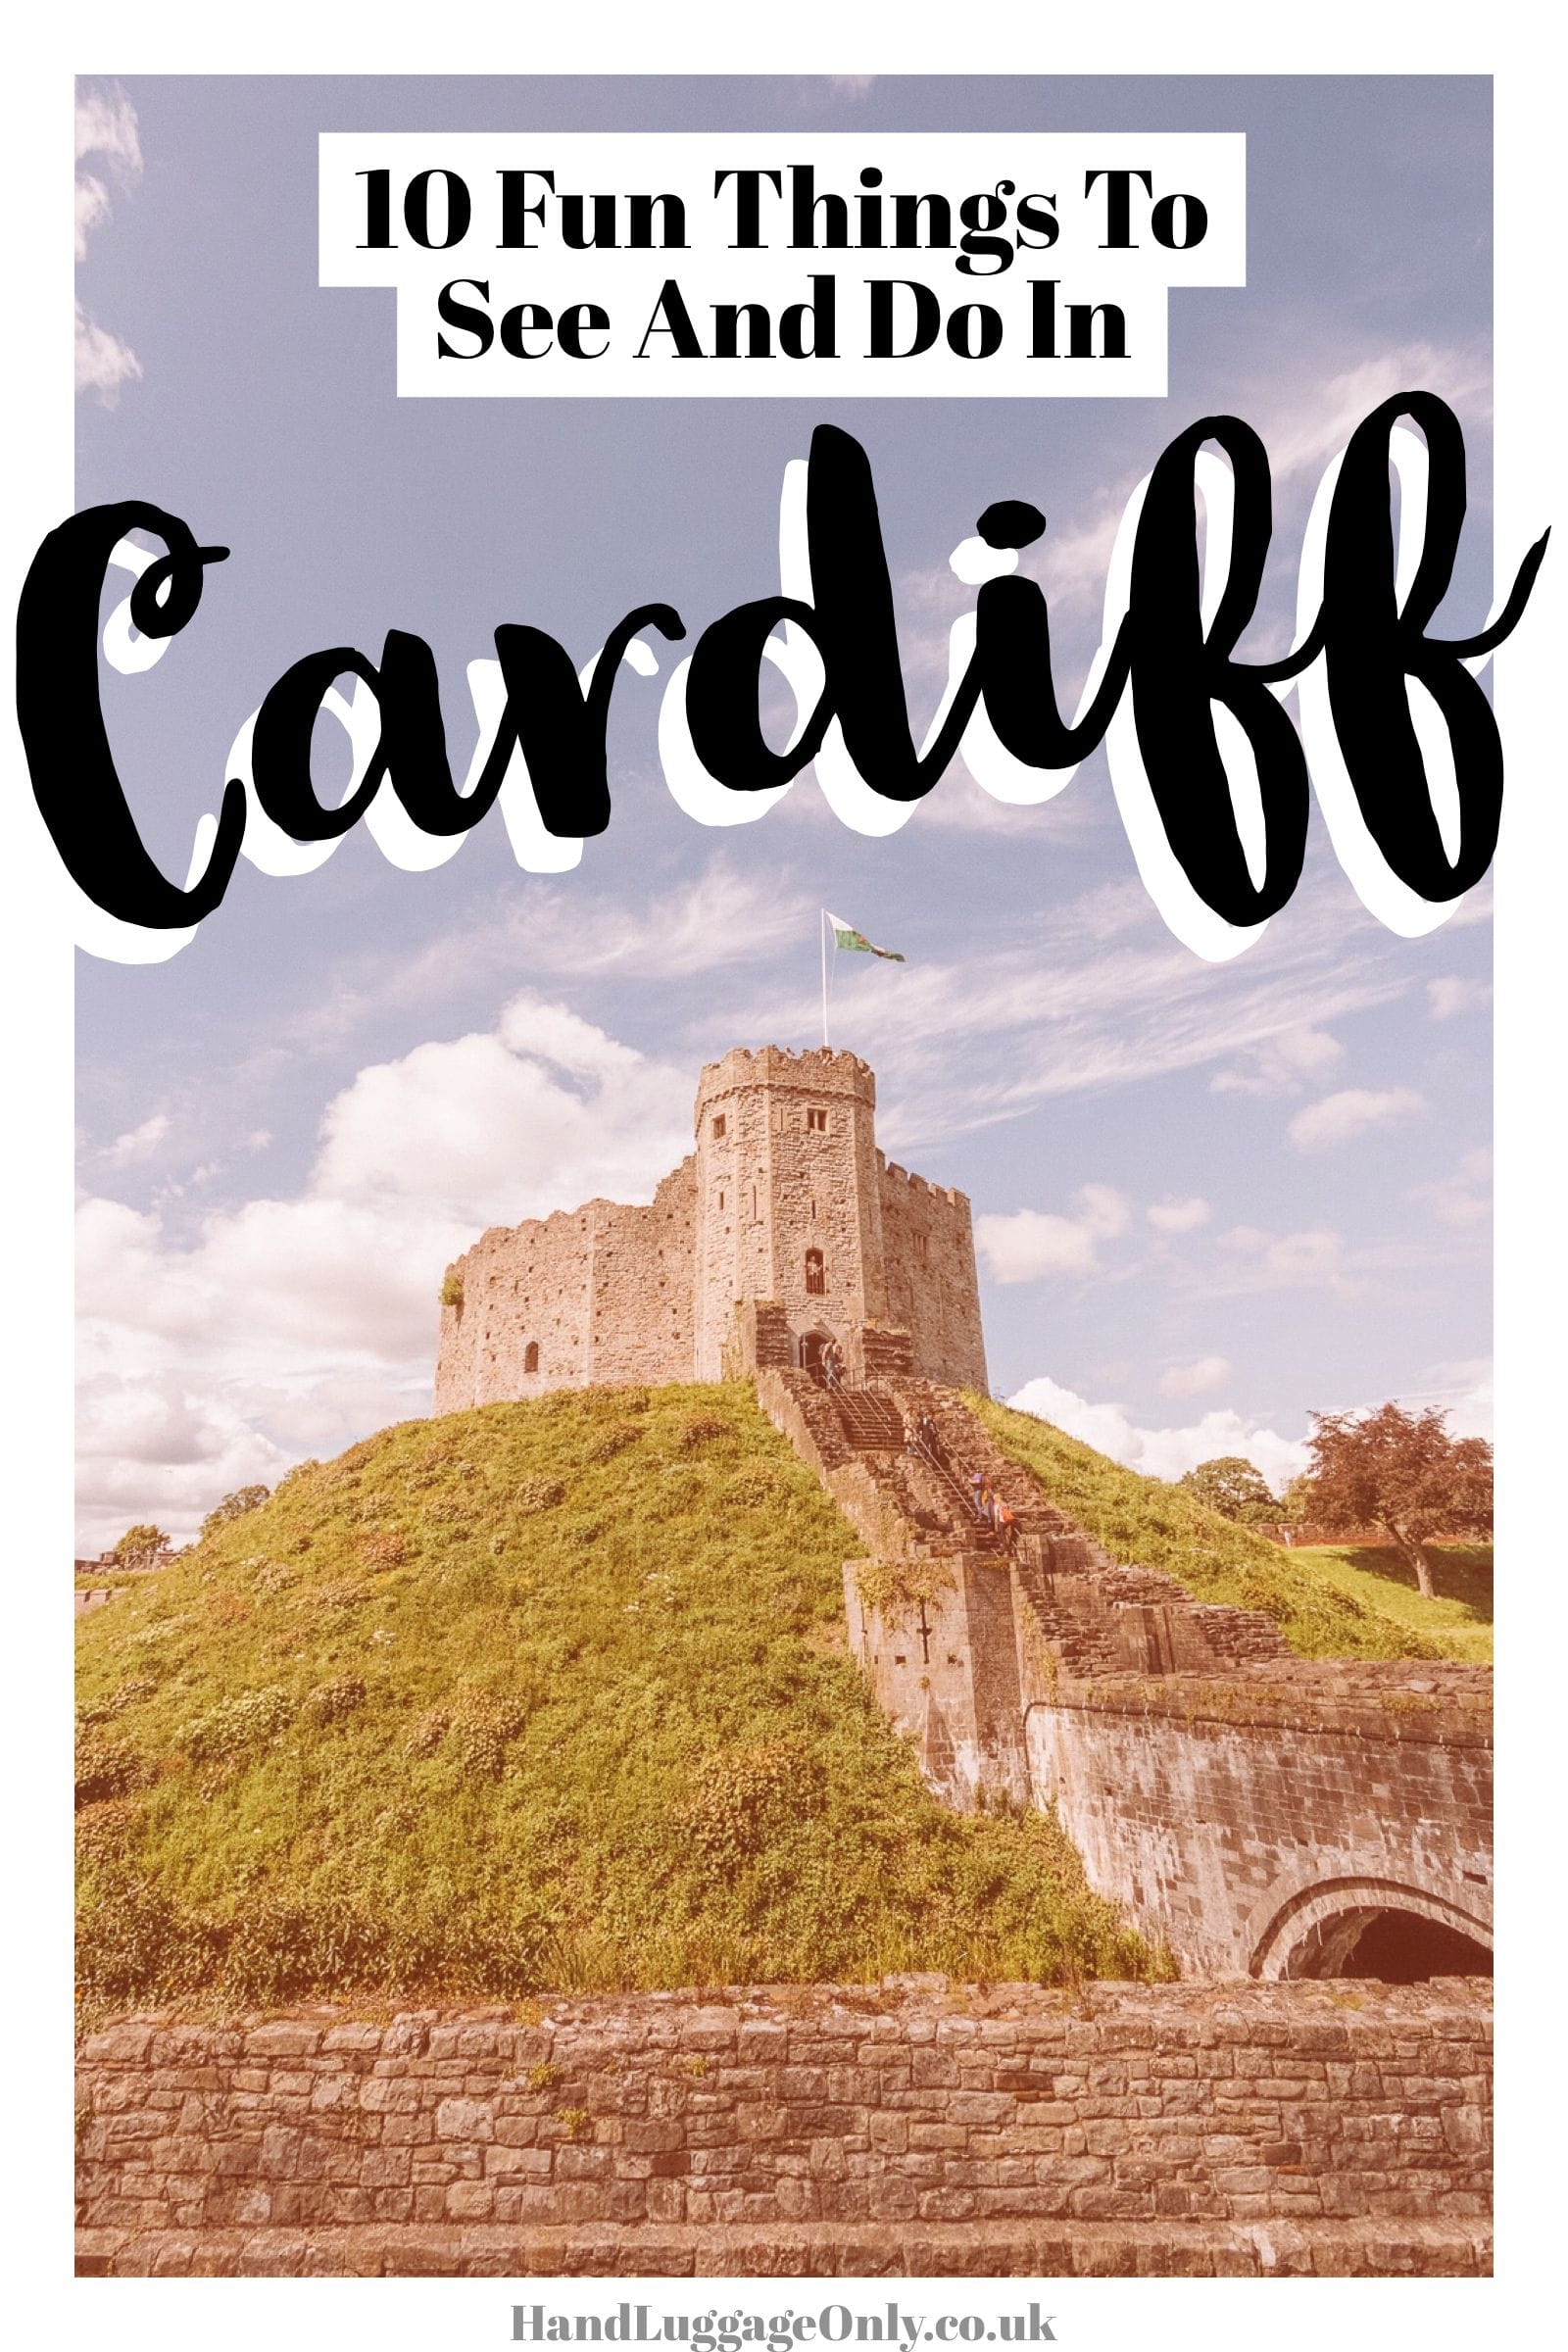 Fun Things To Do In Cardiff (1)